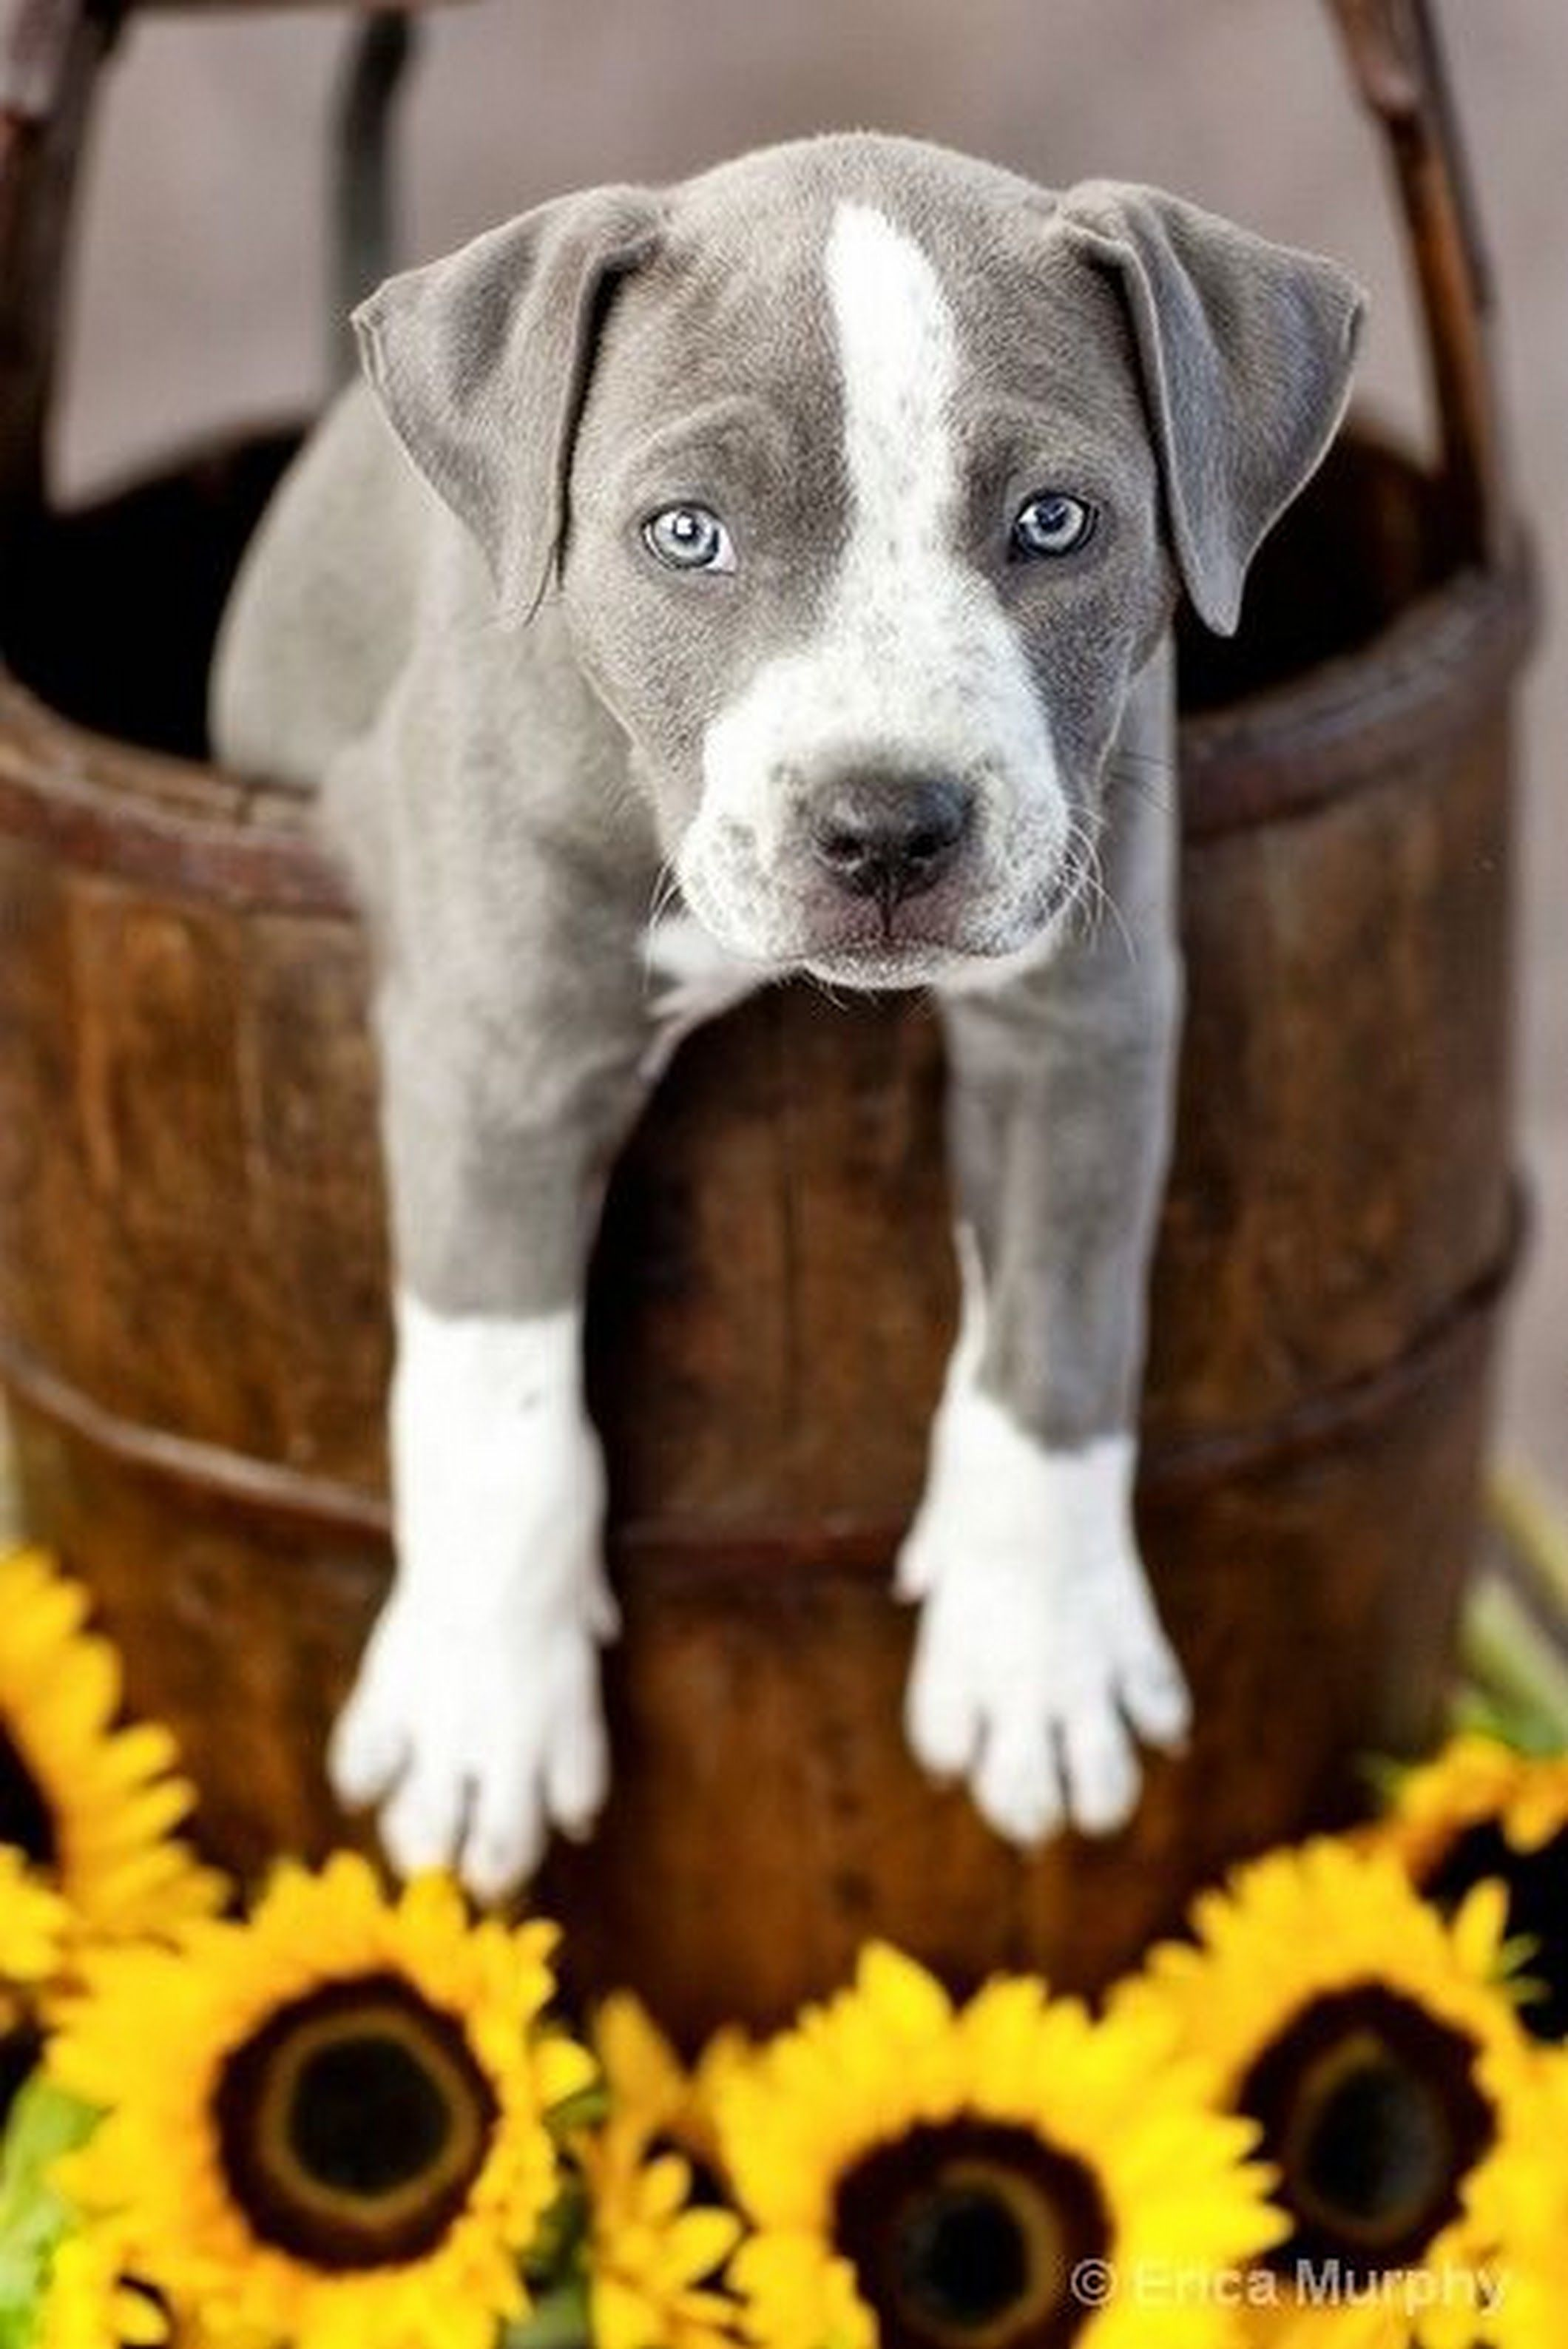 Good Morning Cute Pitbull Puppies Cute Animals Pitbull Puppies